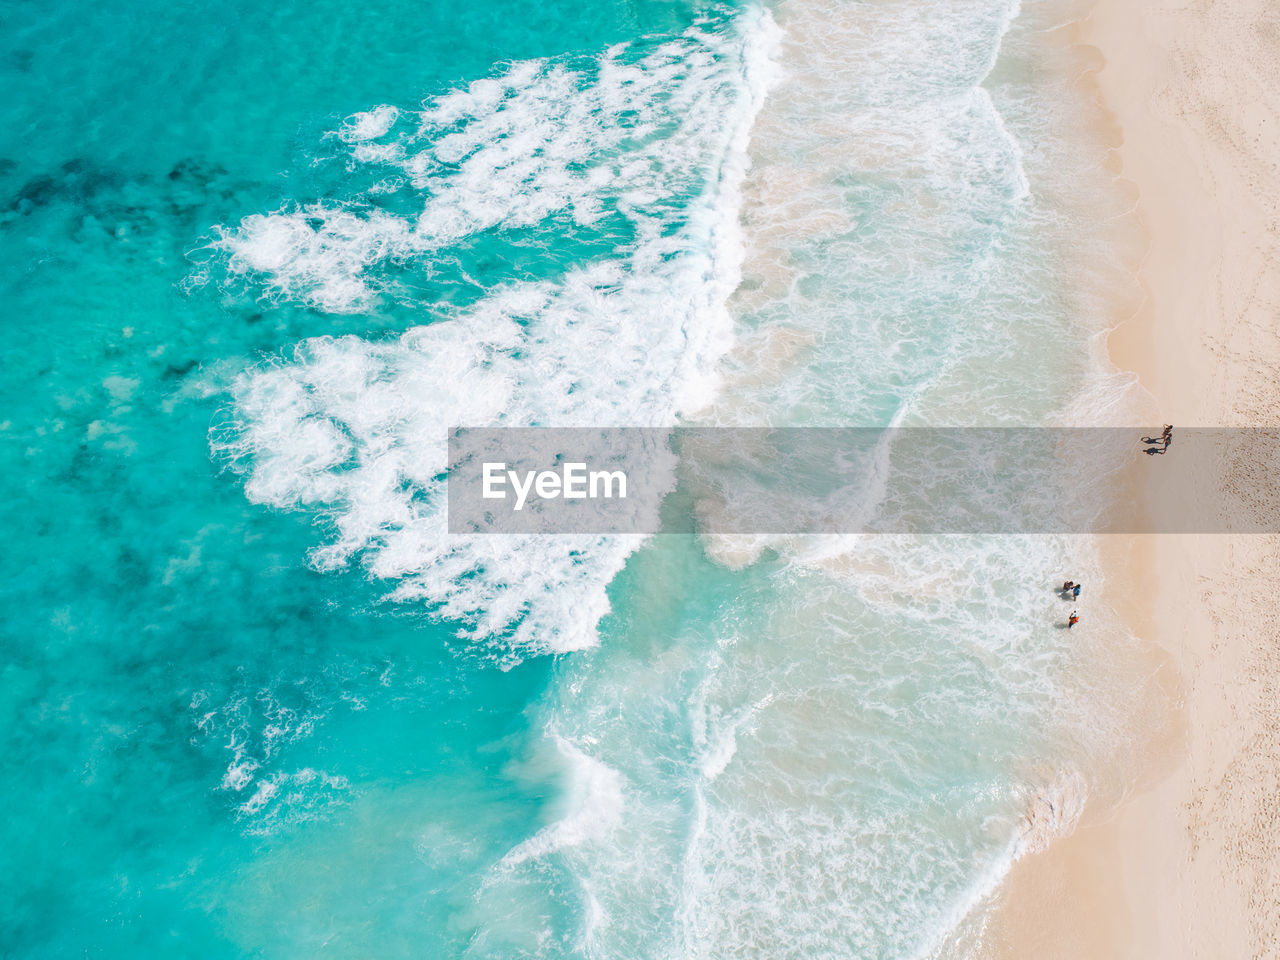 sea, wave, motion, water, sport, aquatic sport, beach, beauty in nature, surfing, land, day, high angle view, nature, outdoors, scenics - nature, splashing, power, power in nature, turquoise colored, breaking